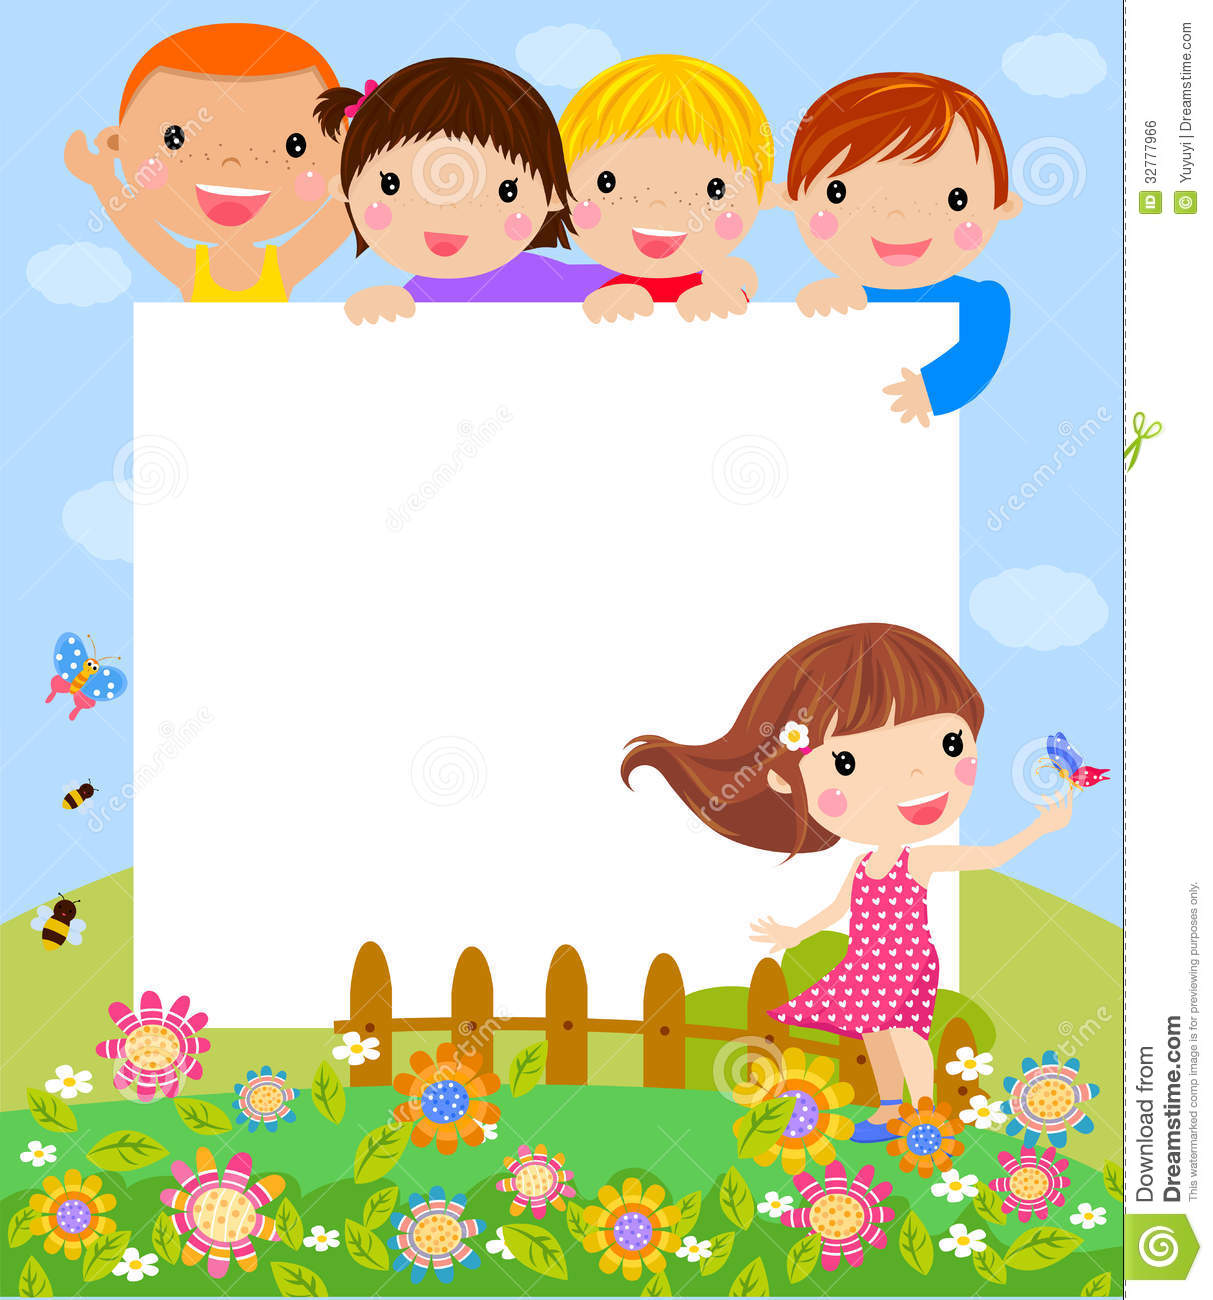 happy kids and frame - Kids Images Free Download